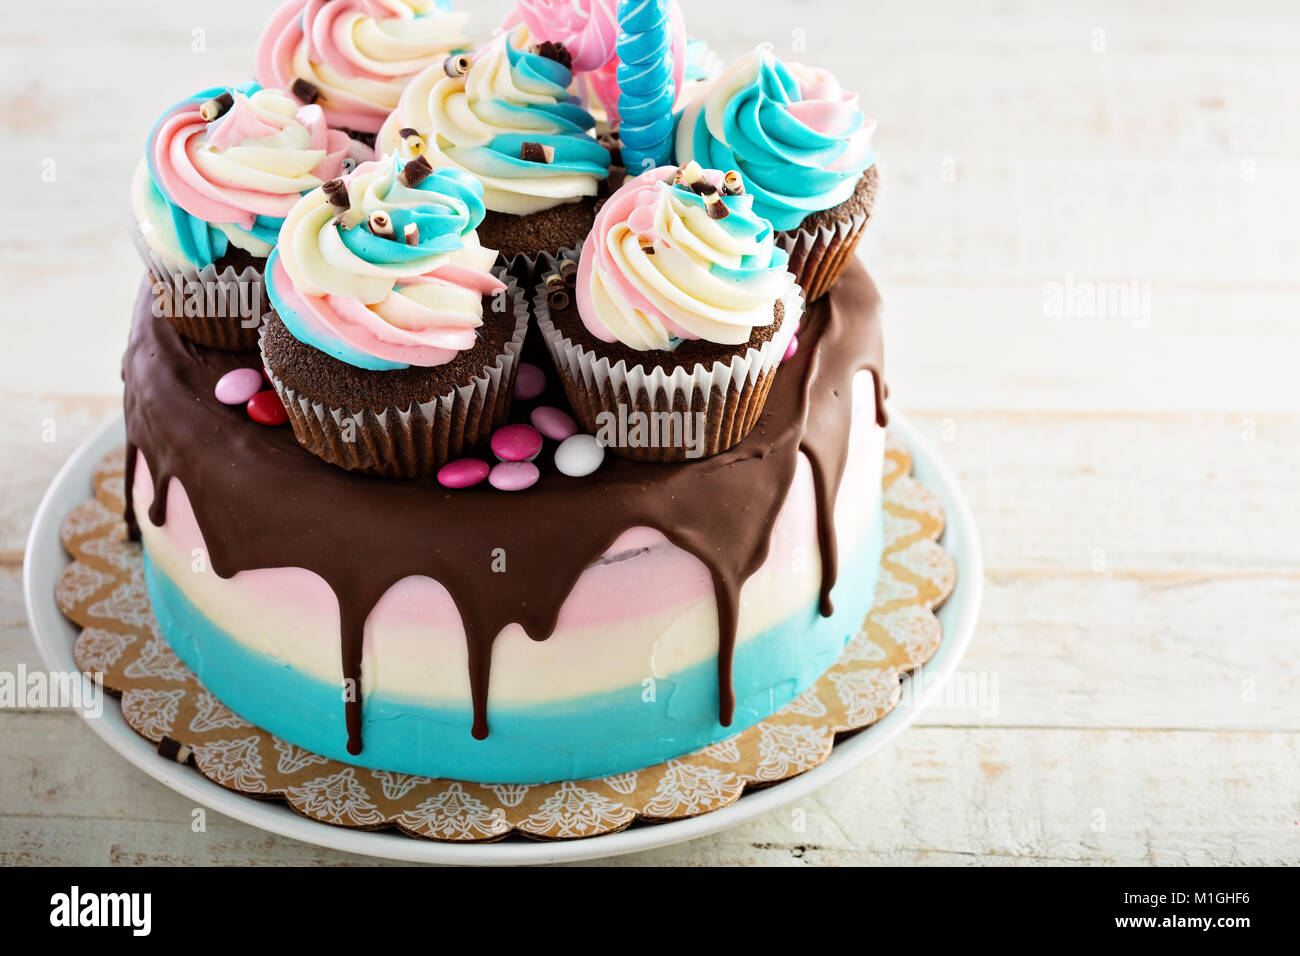 Festive and colorful birthday or baby shower chocolate cake - Stock Image